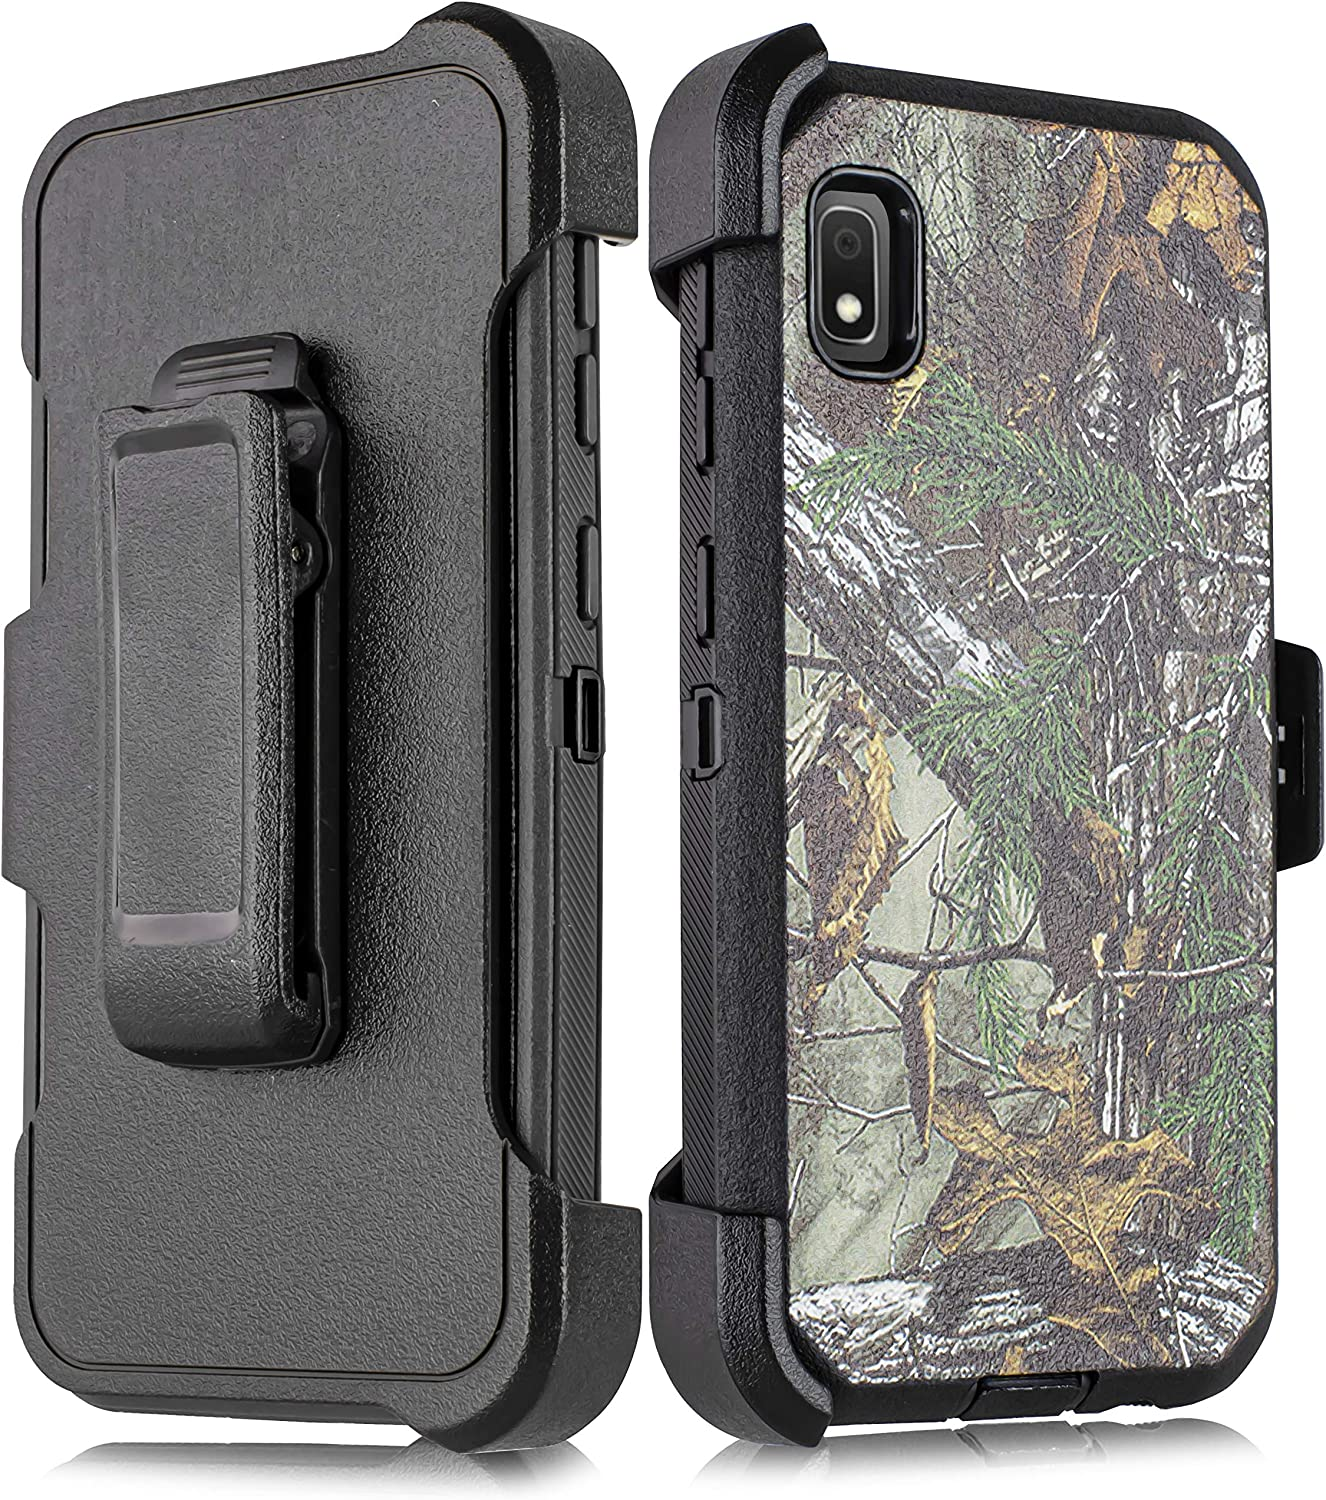 Samsung Galaxy A10e case,Heavy Duty Hard Shockproof Protector Shield Case Cover with Belt Clip Holster for 2019 Samsung Galaxy A10E Black